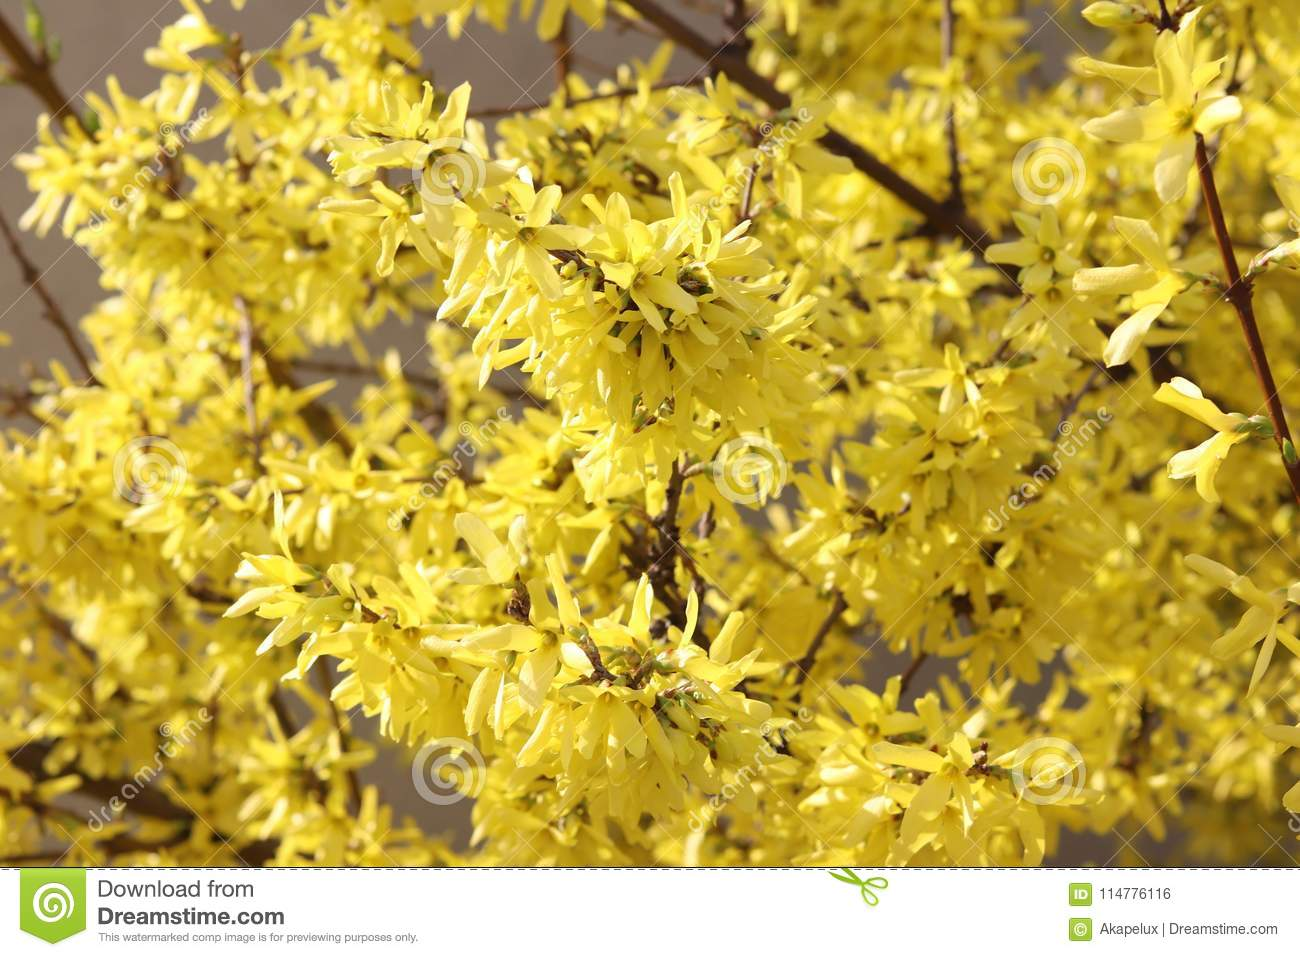 The Spring Bush Is Forsythia Yellow Flowers In Sunlight A Good Mood